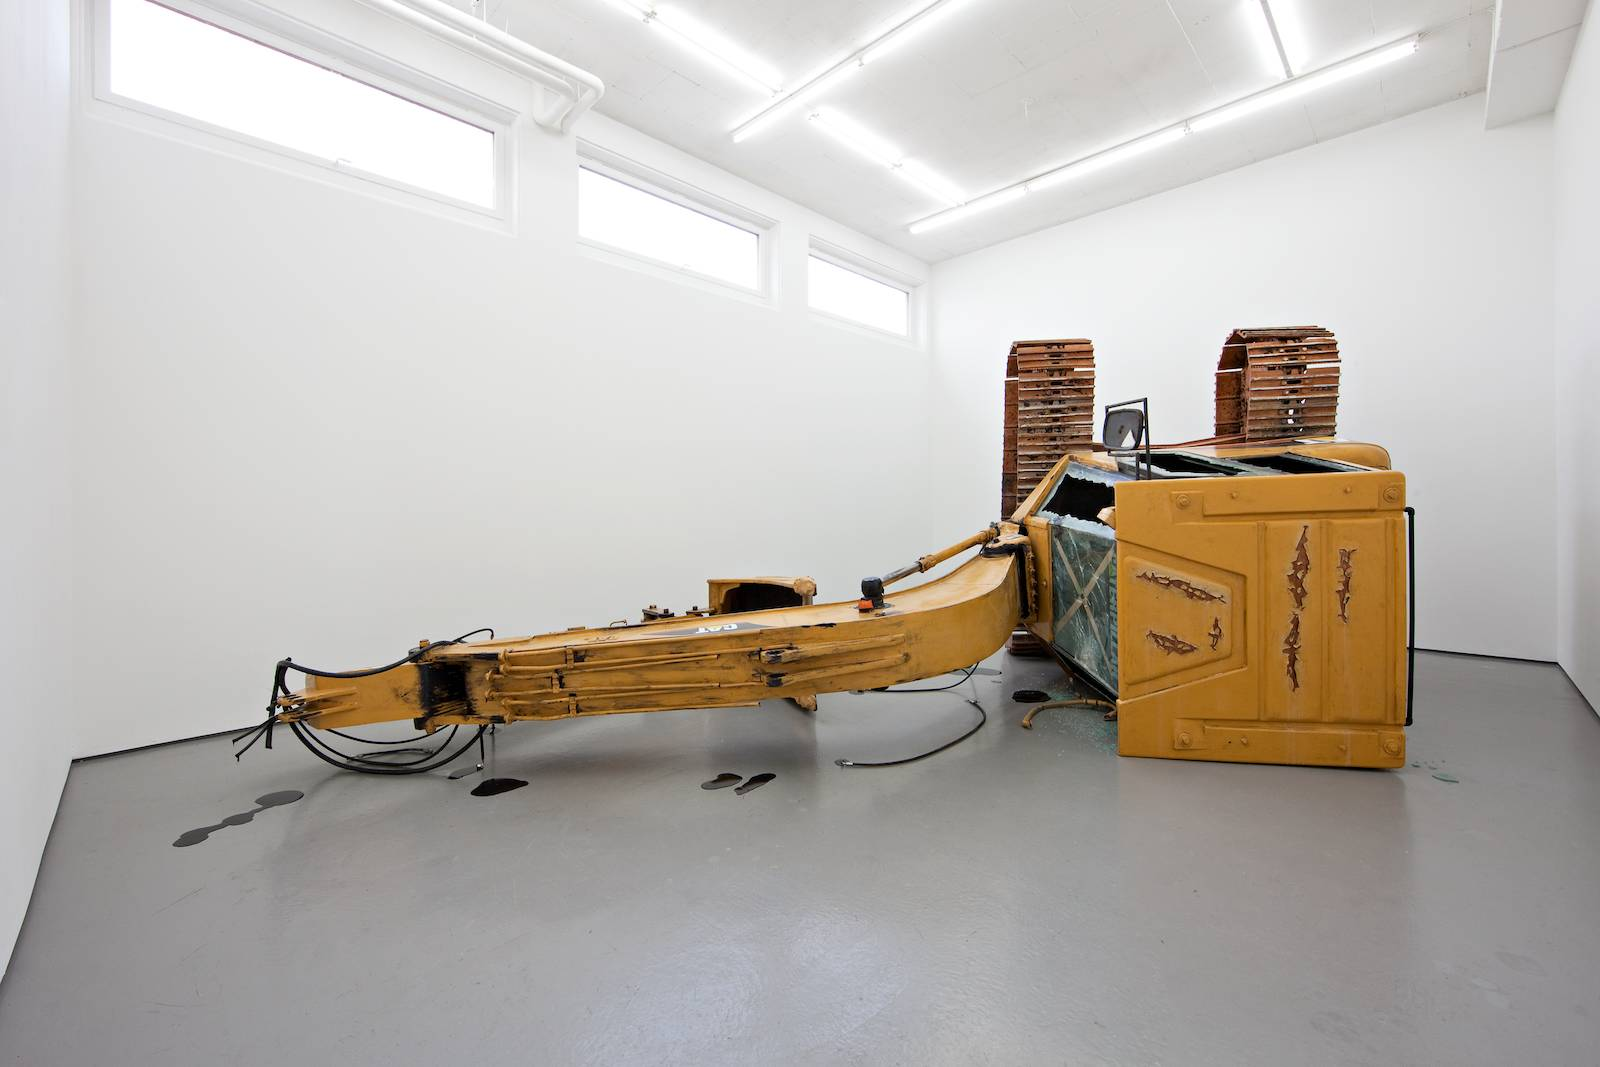 Party at the funeral, 2010-2011, epoxy, polyester, fiber glass, plastic, glass, silicon, paint, various original parts from a Caterpillar excavator, dimensions variable, ca H 220 x W 720 x D 530 cm